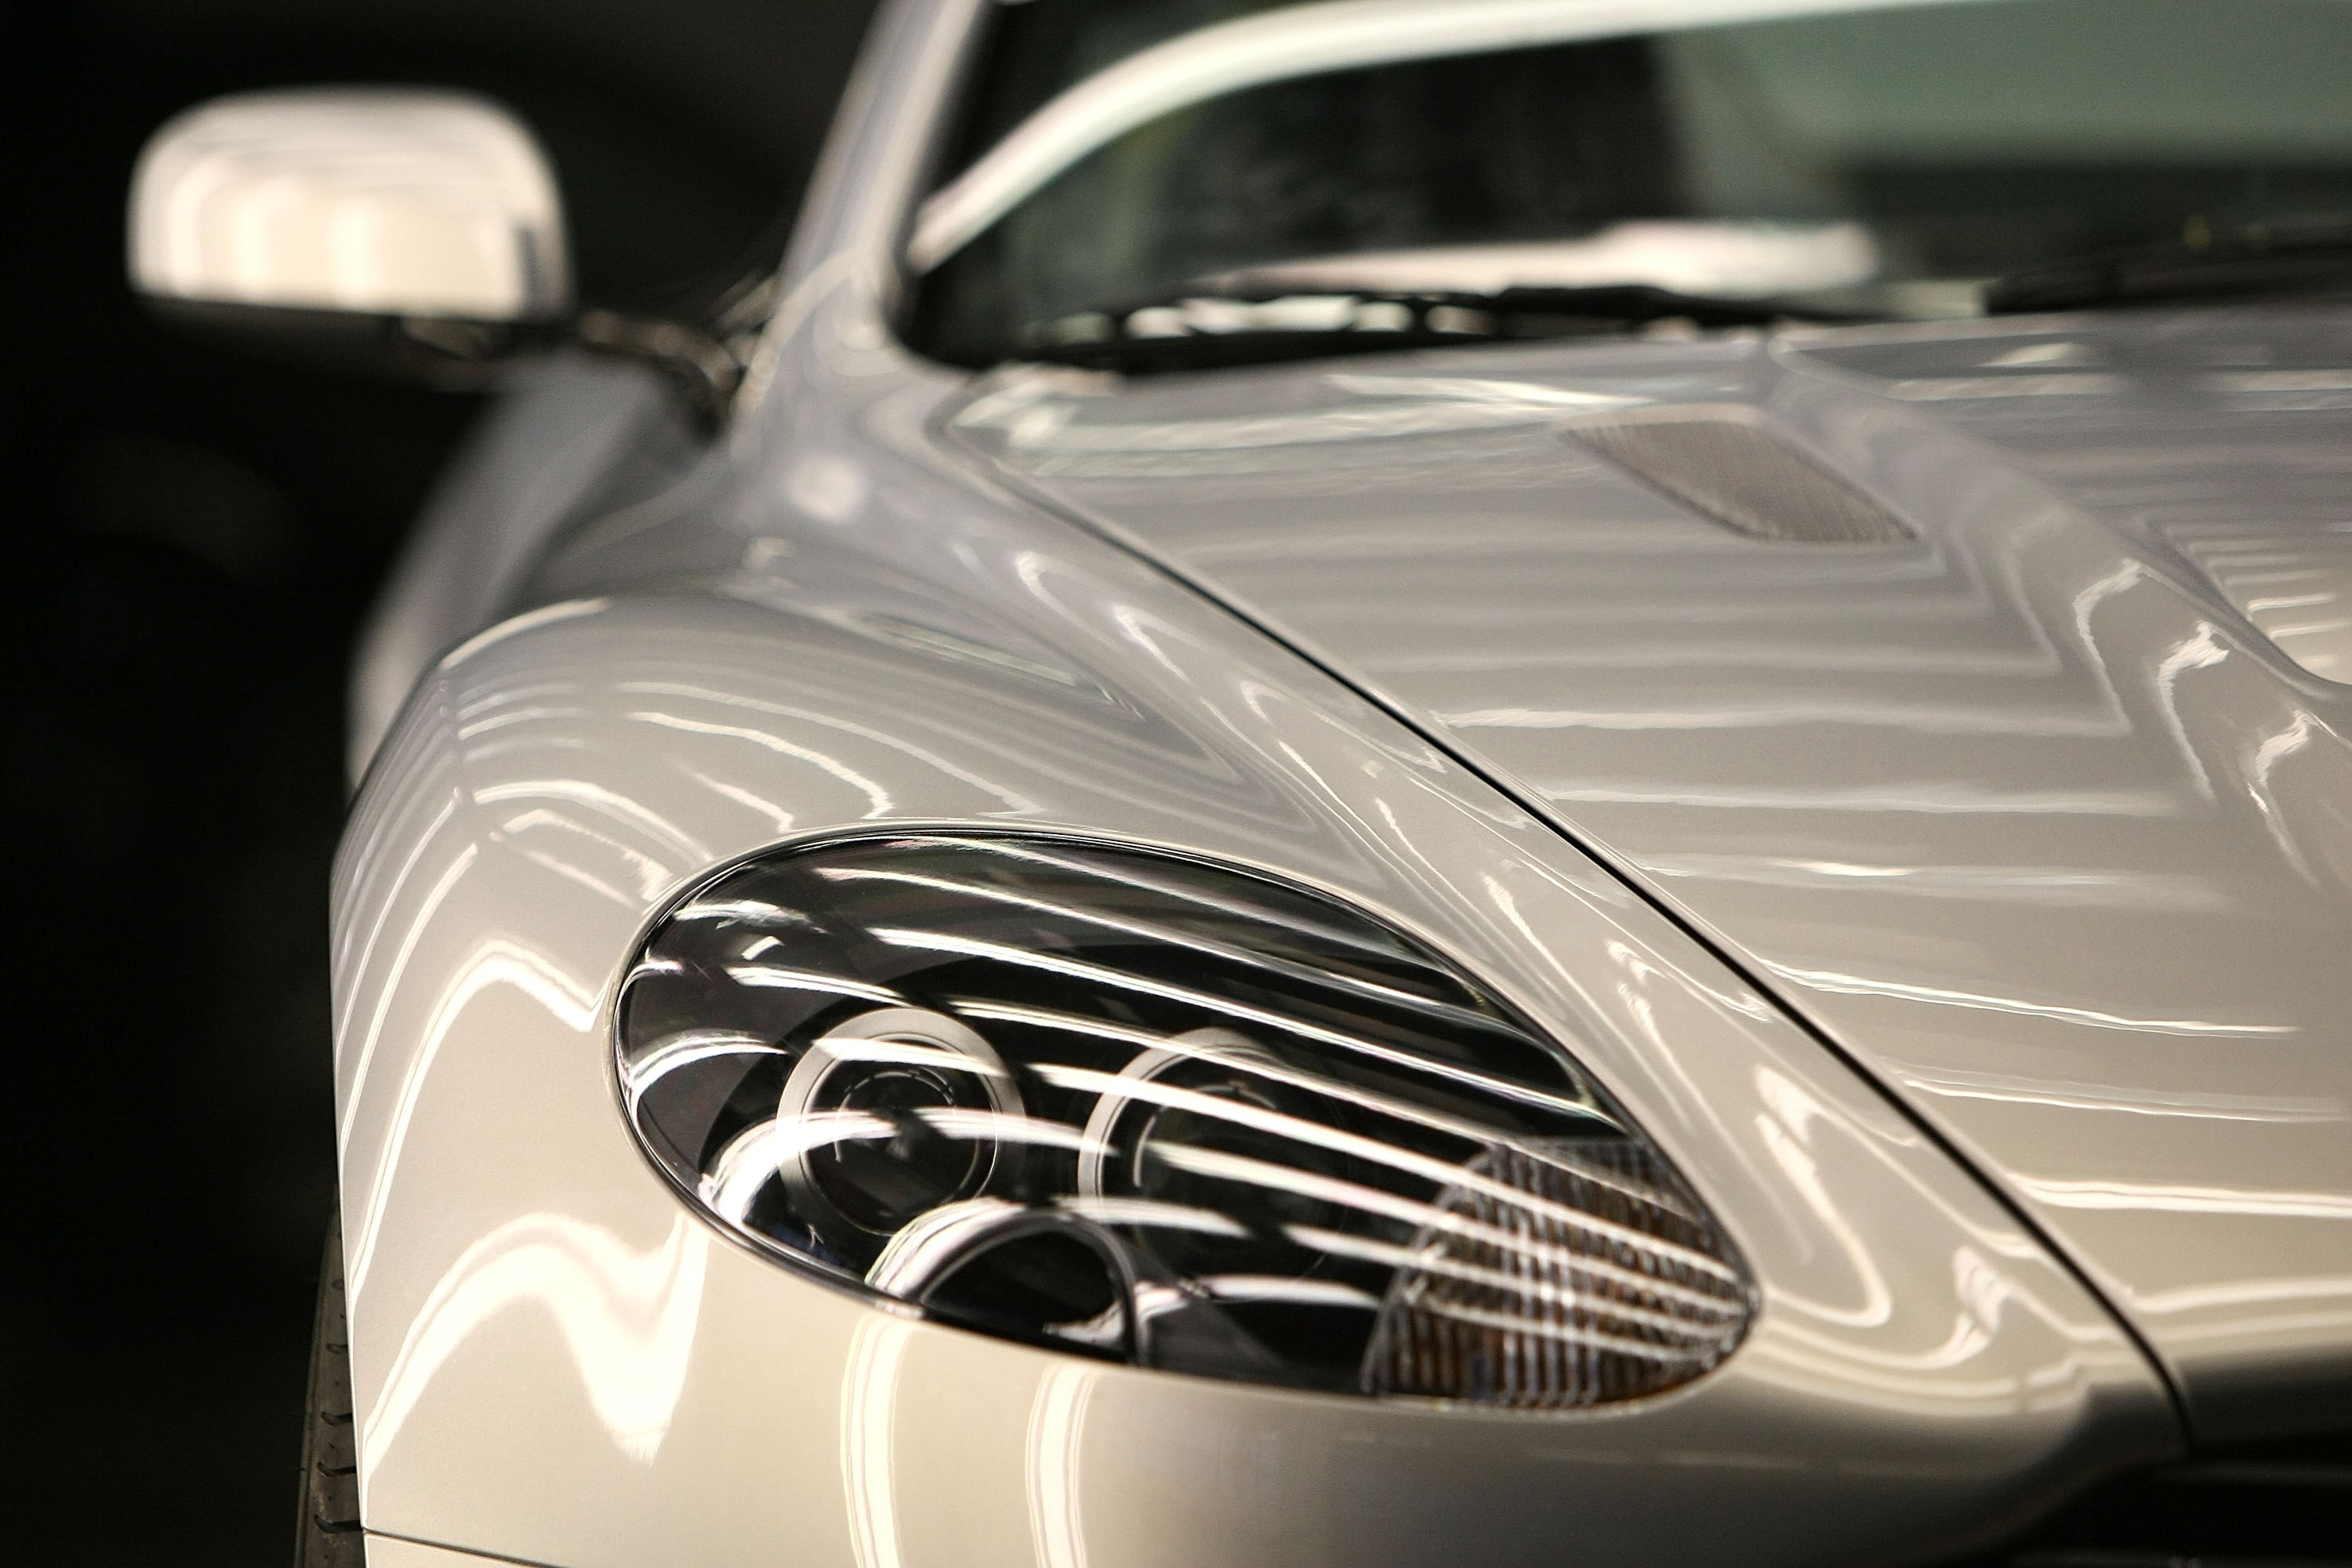 Aston Martin revenue warning leaves shareholders shaken, not stirred